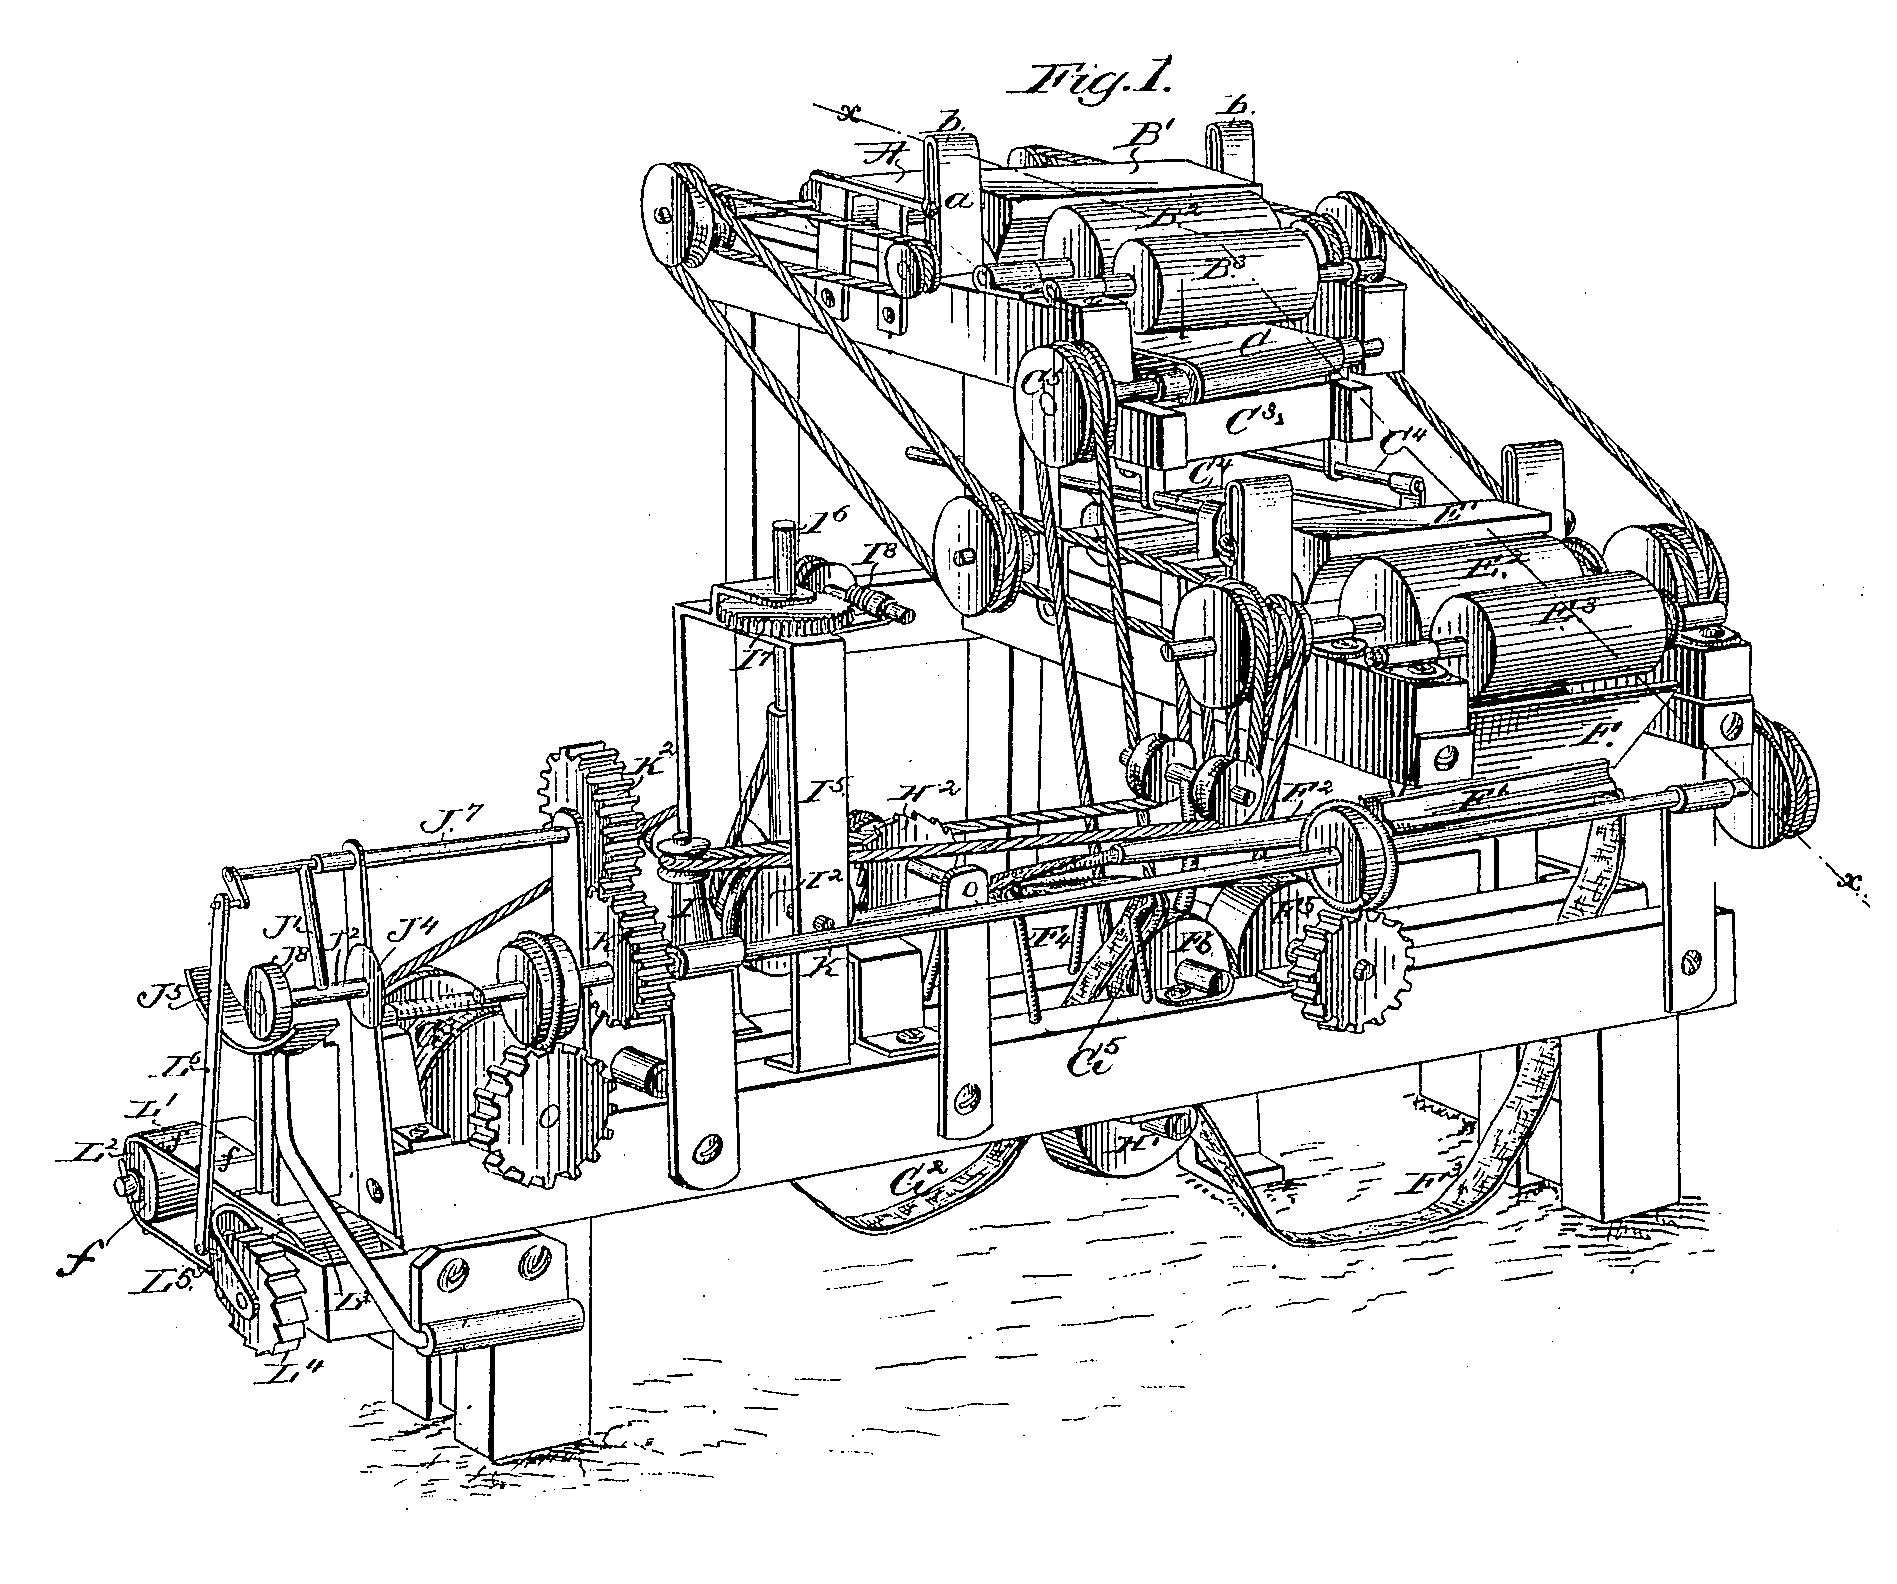 File:Bonsack machine.png - Wikipedia, the free encyclopedia